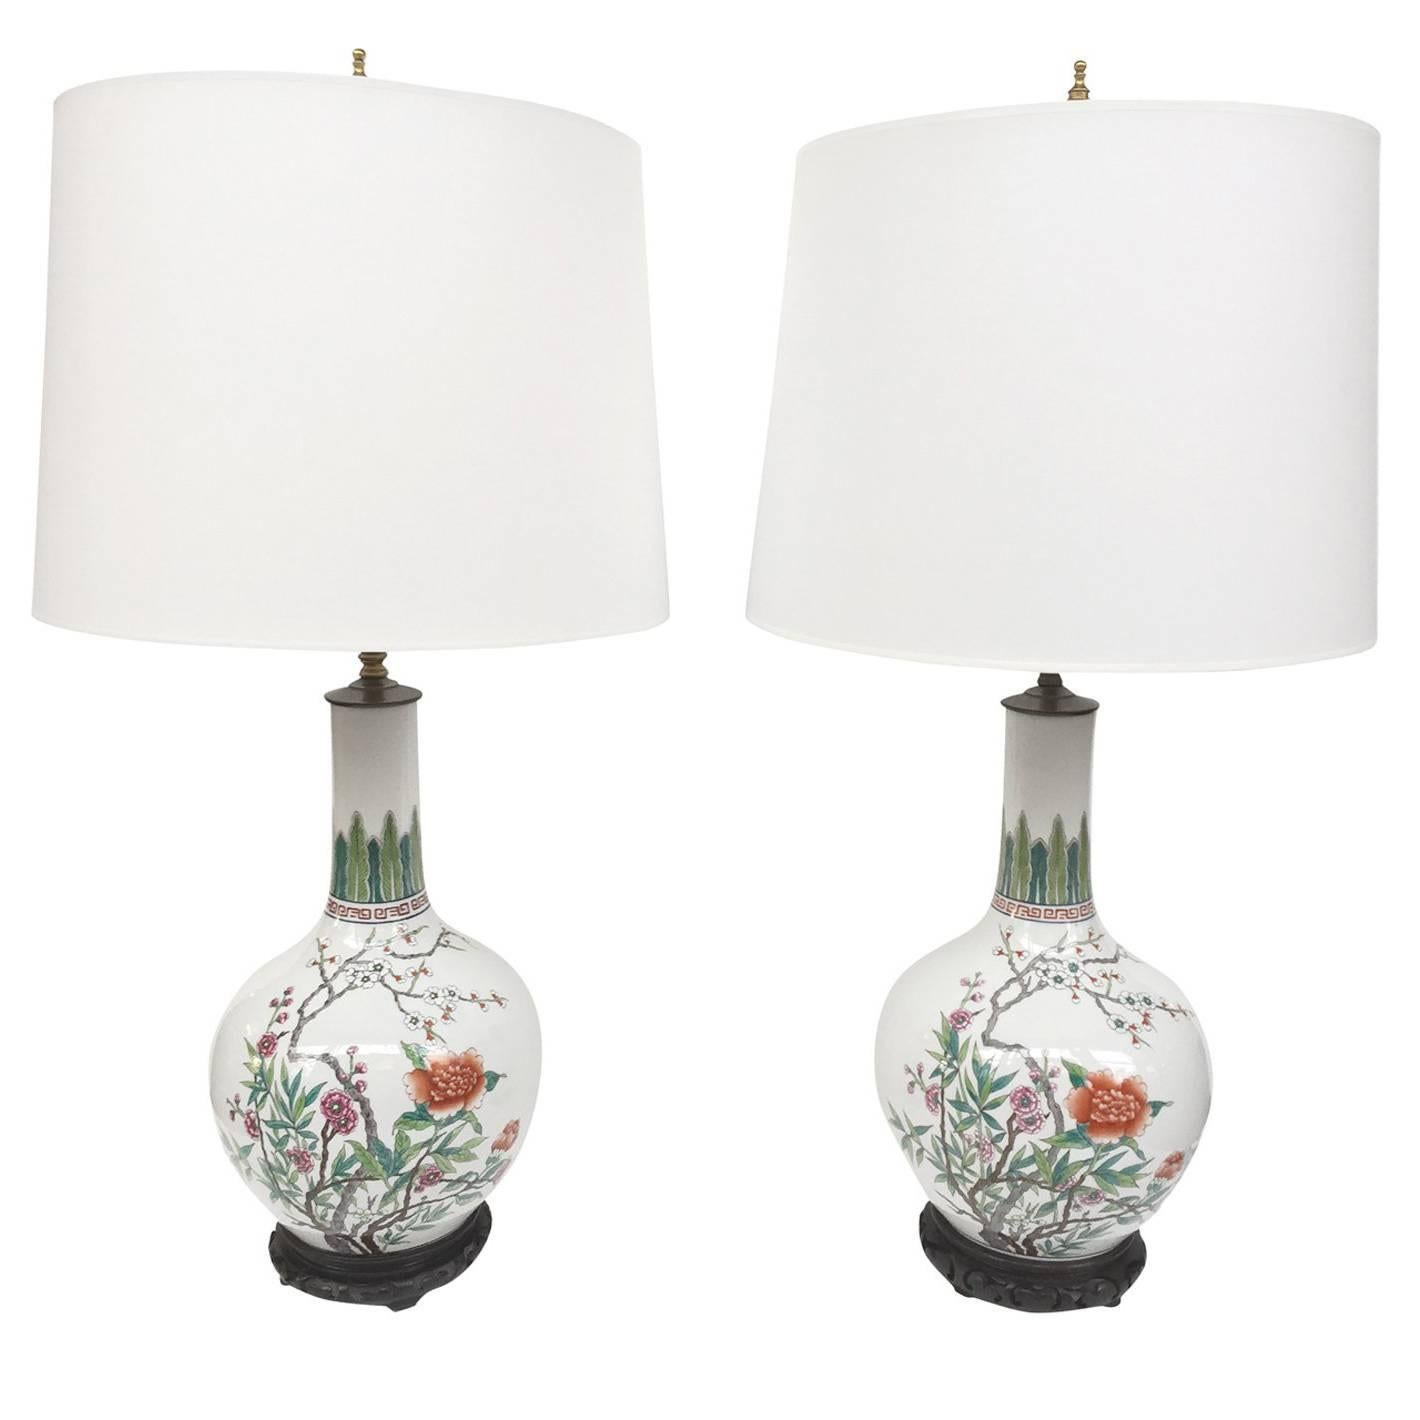 Pair Of Pierced Body Chinese Porcelain Table Lamps For Sale At 1stdibs